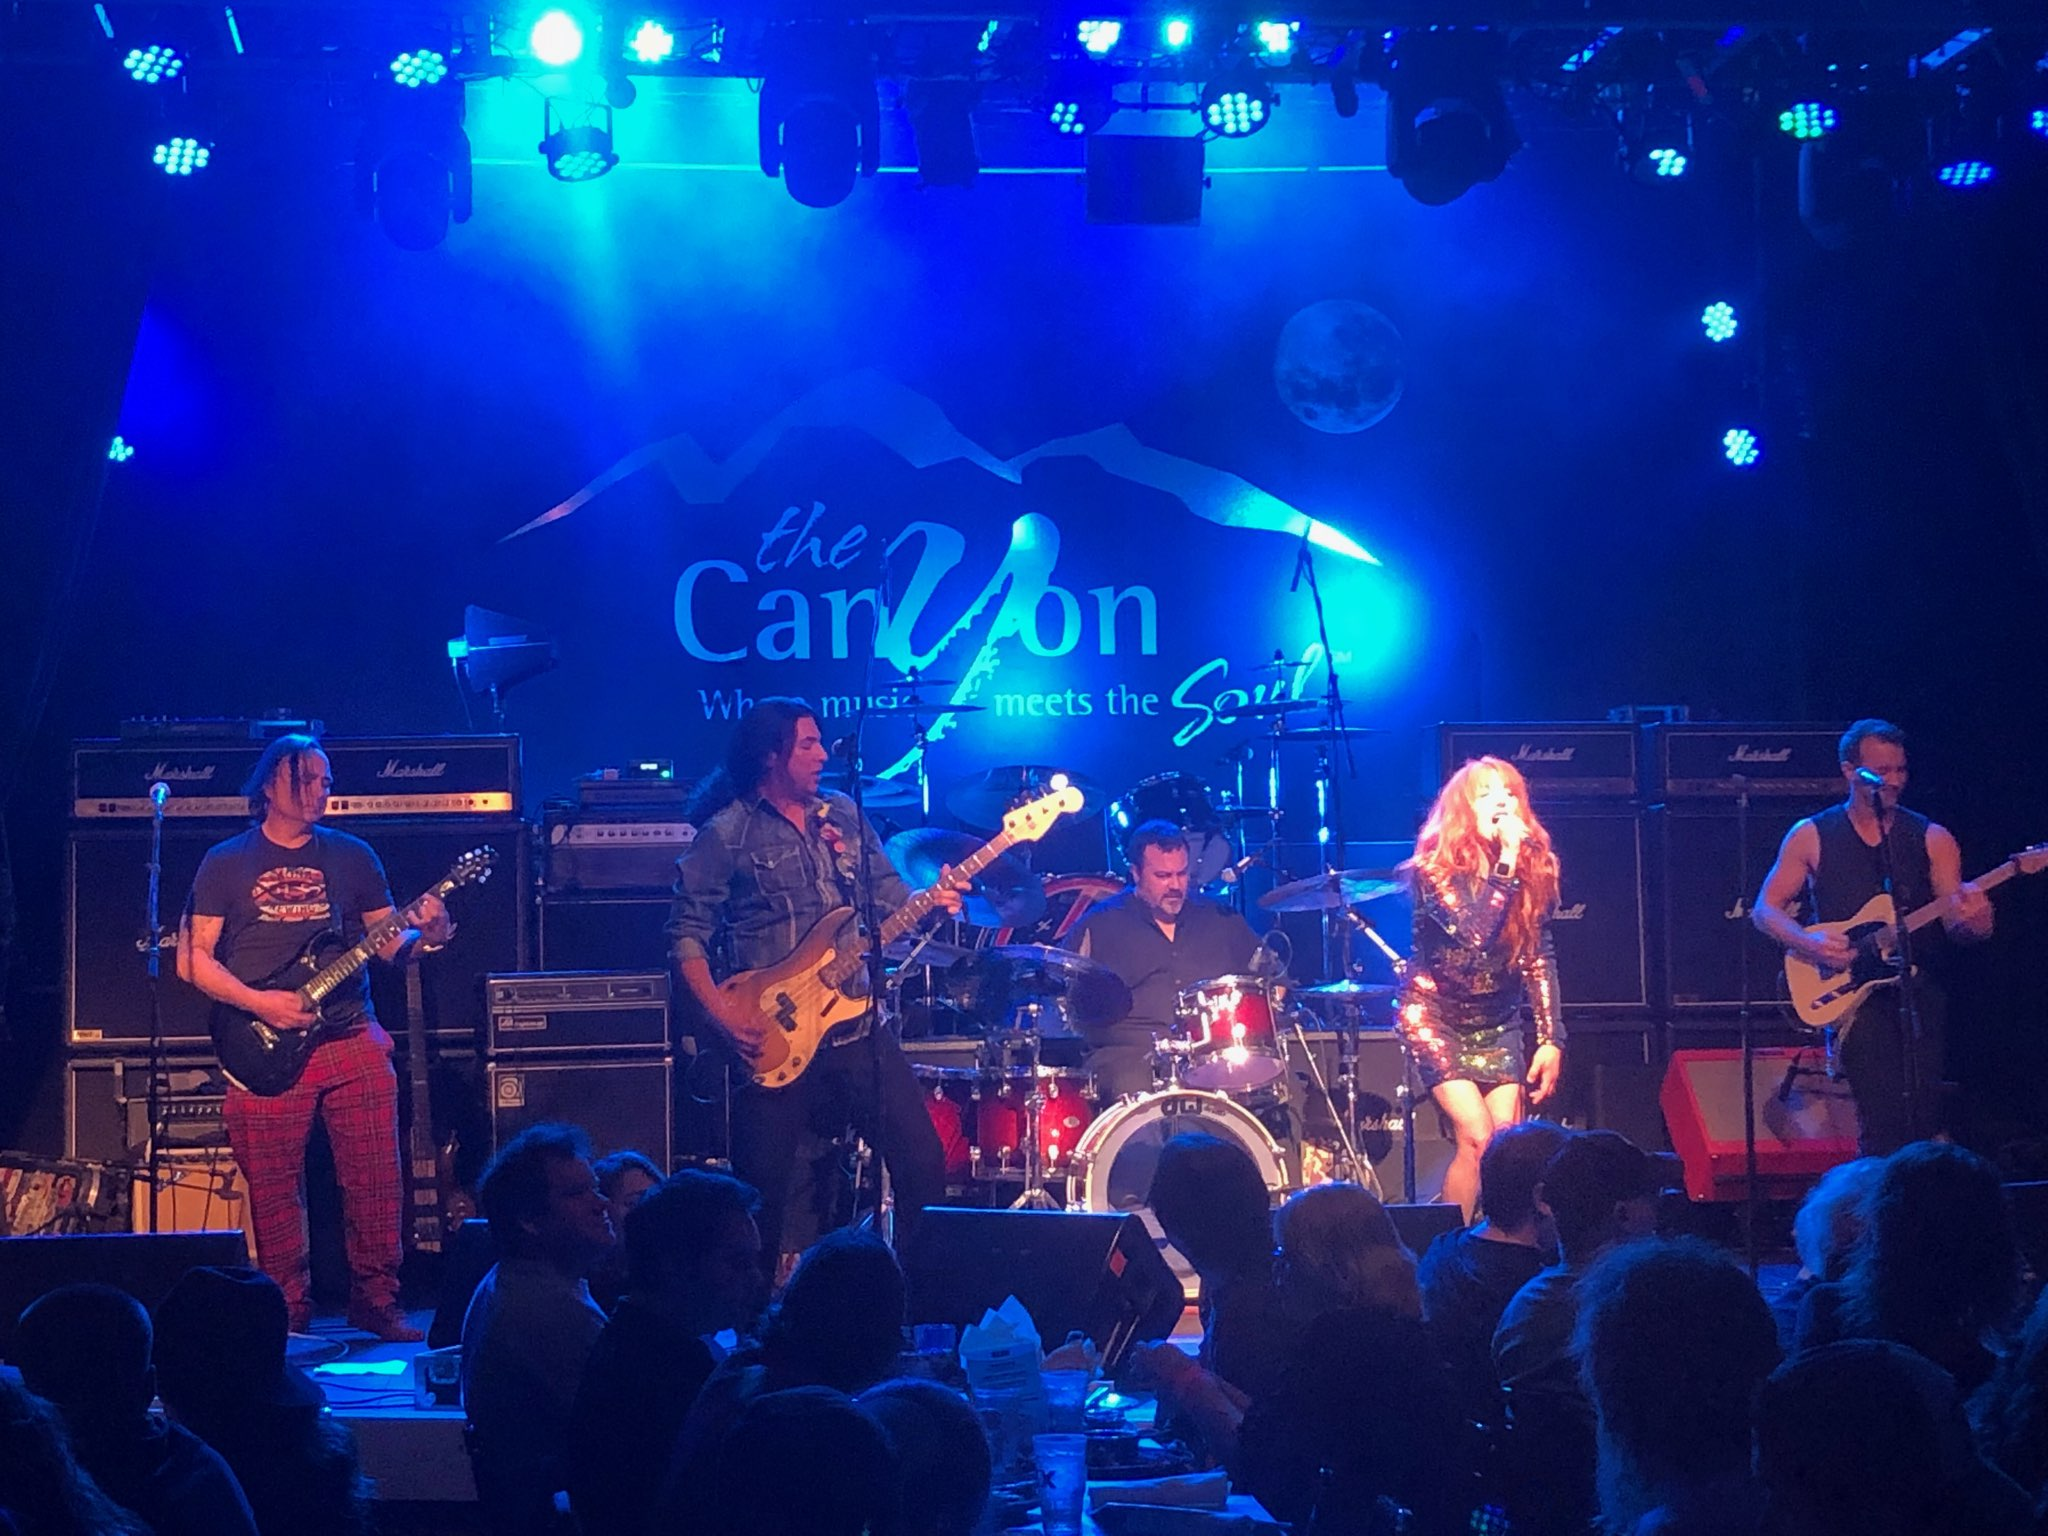 Performing at The Canyon in Agoura Hills, CA (1-26-19) Opening for Ace Frehley of KISS   photo by Matt Mellier